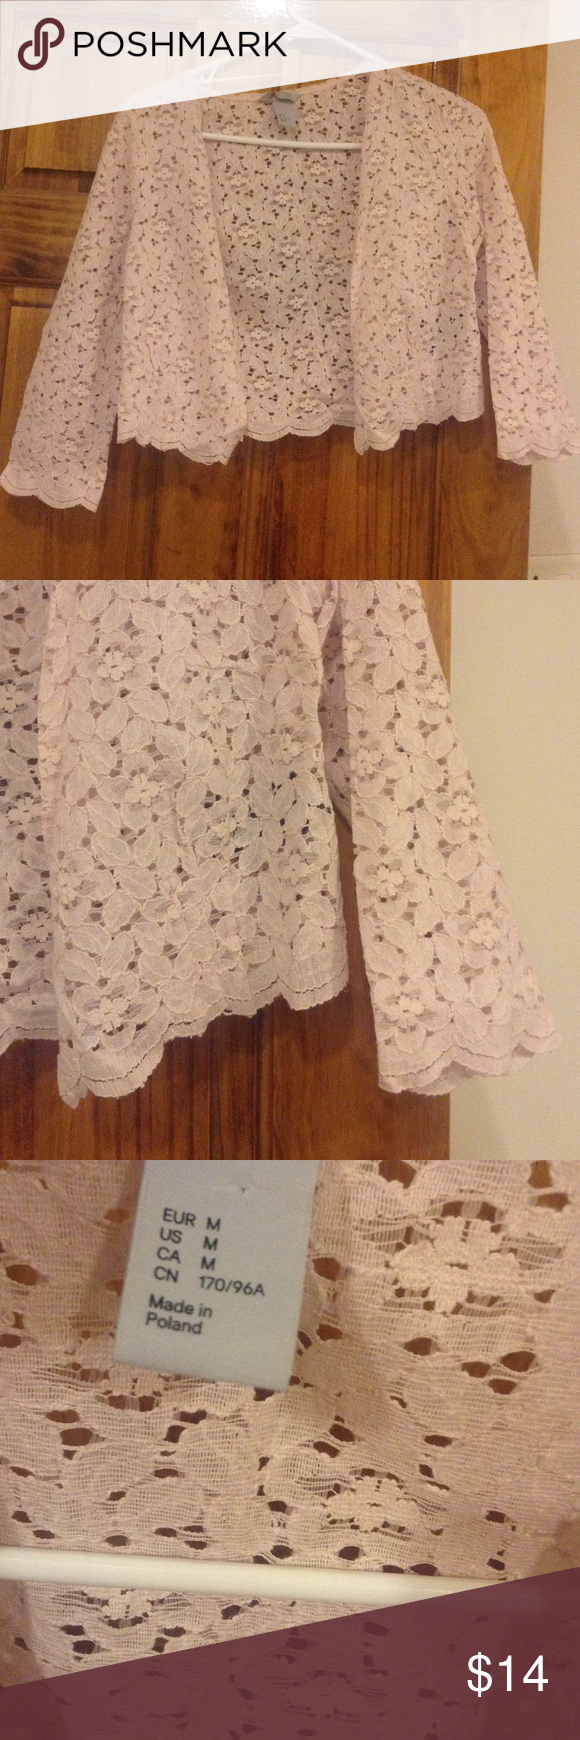 Pale pink lace cardigan | Pale pink and Customer support